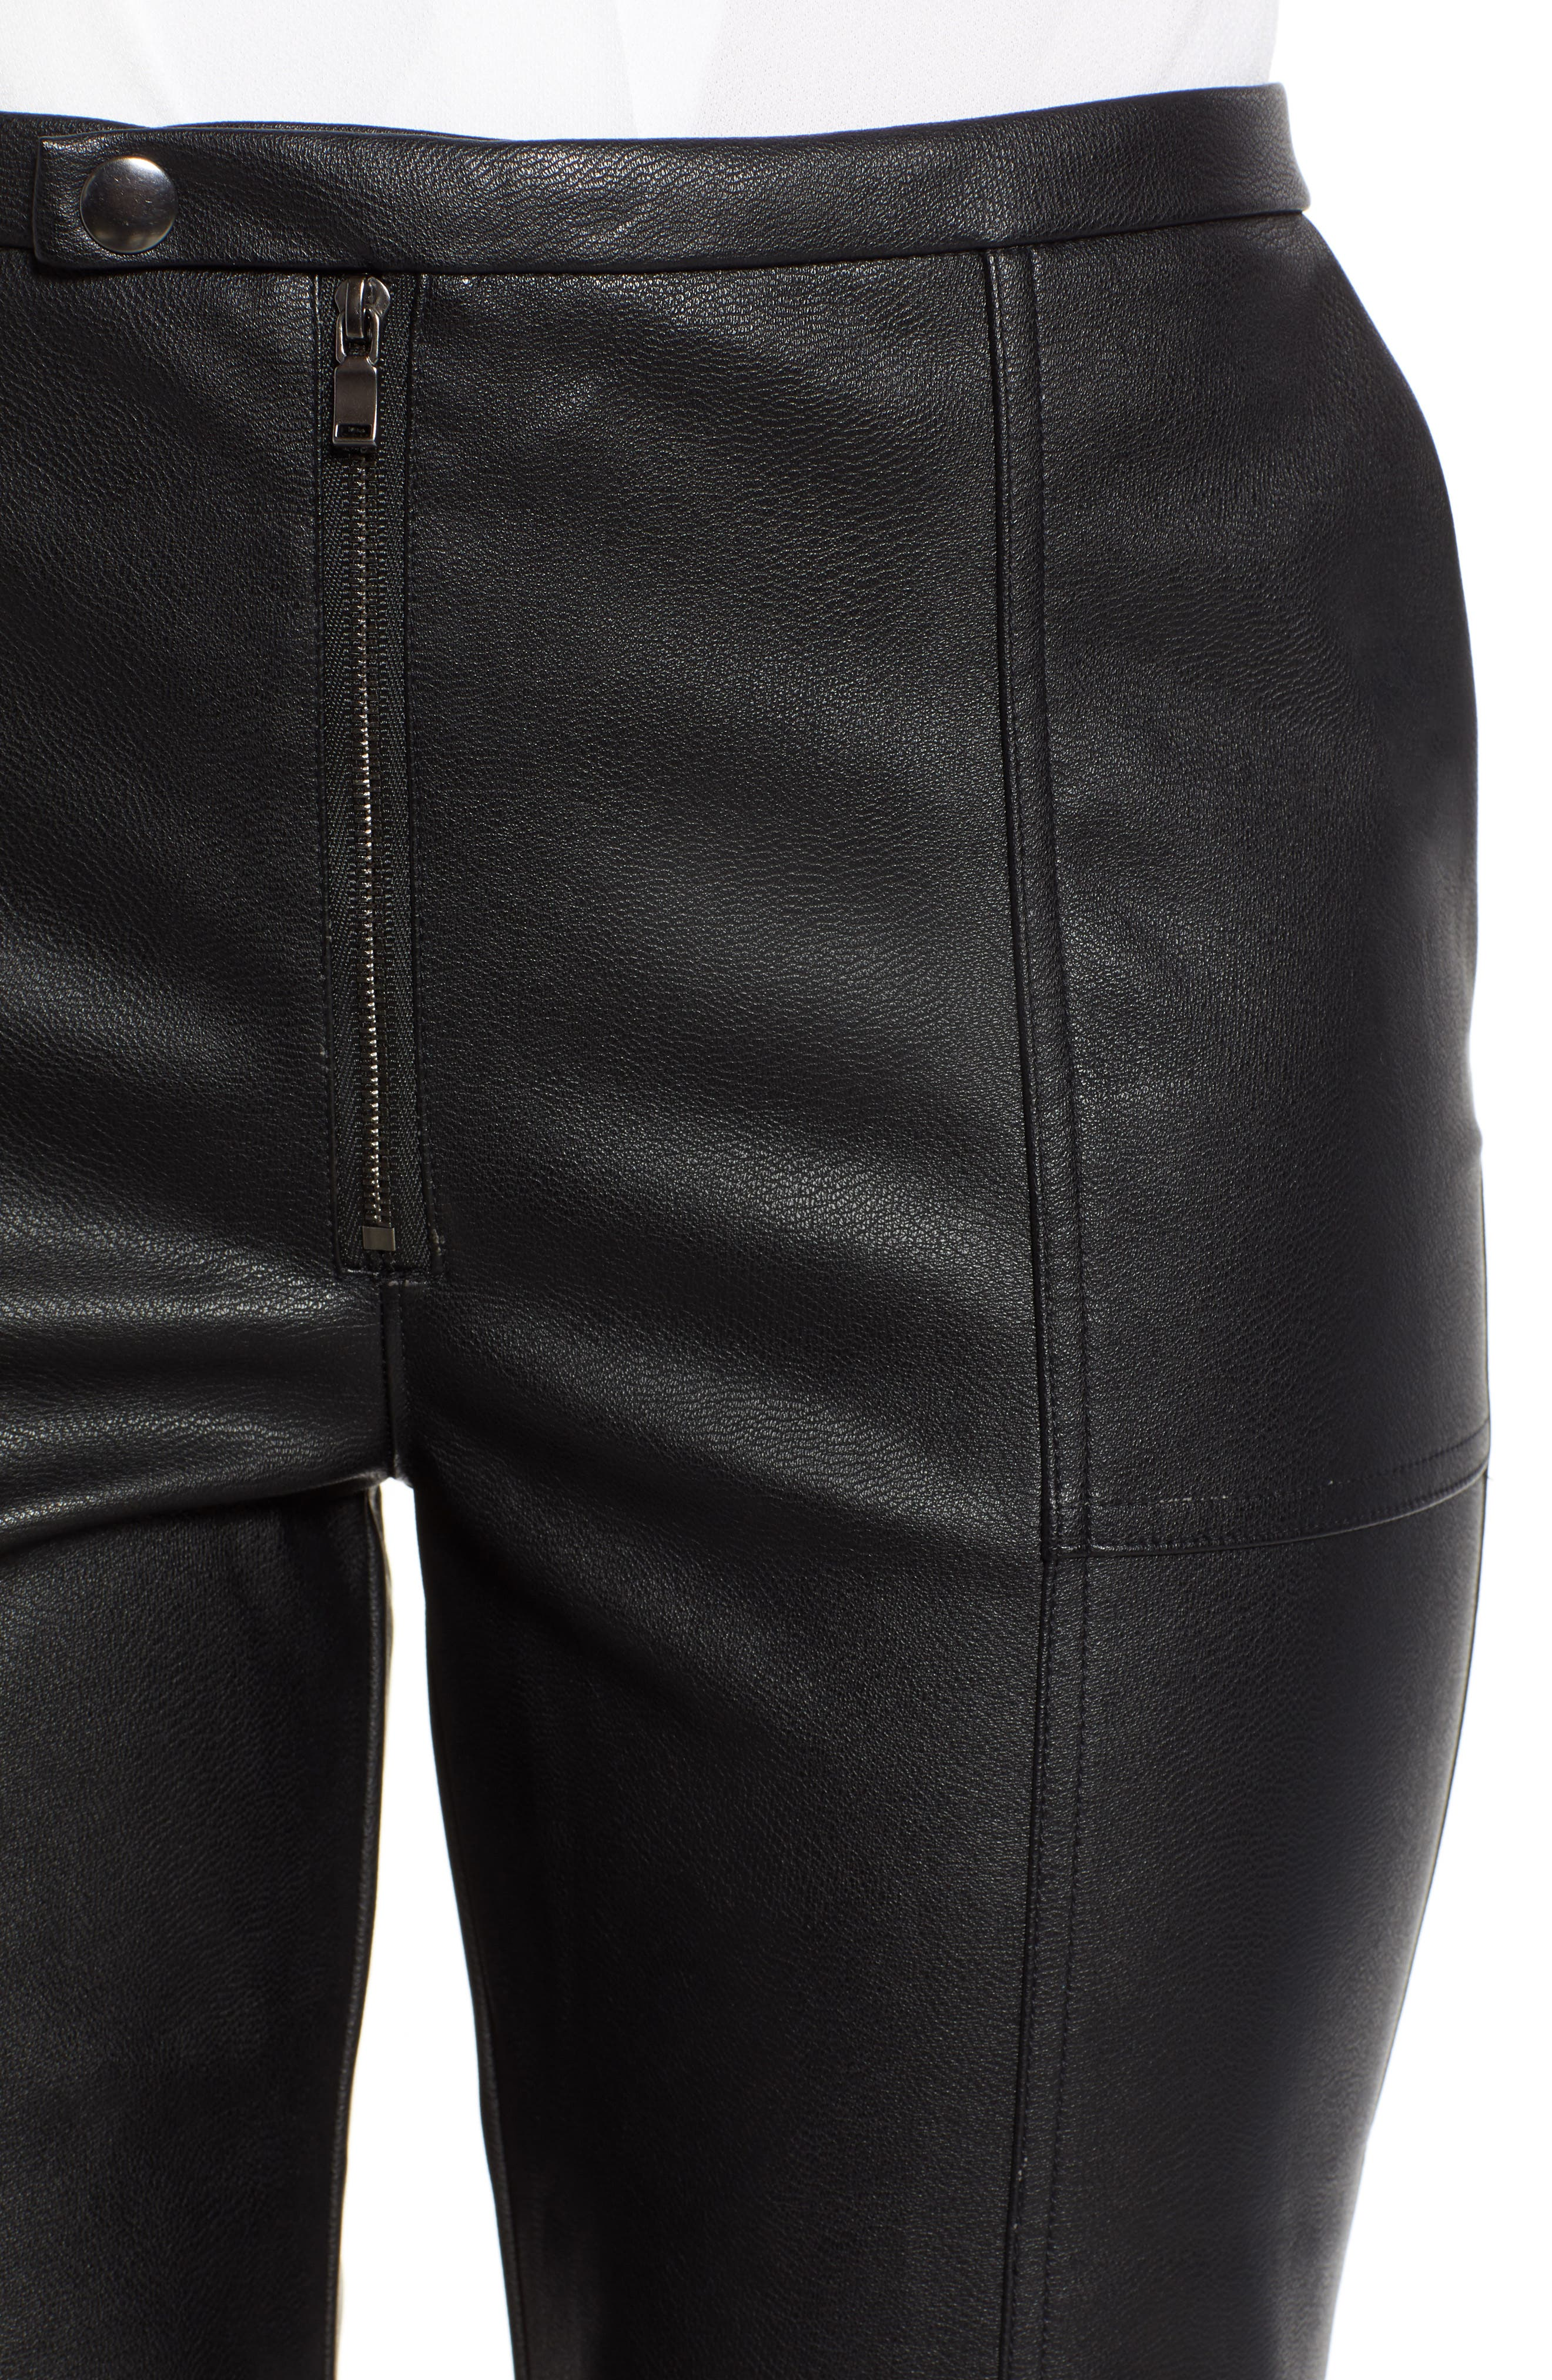 DAVID LERNER, Pintuck Flare Faux Leather Trousers, Alternate thumbnail 5, color, 001